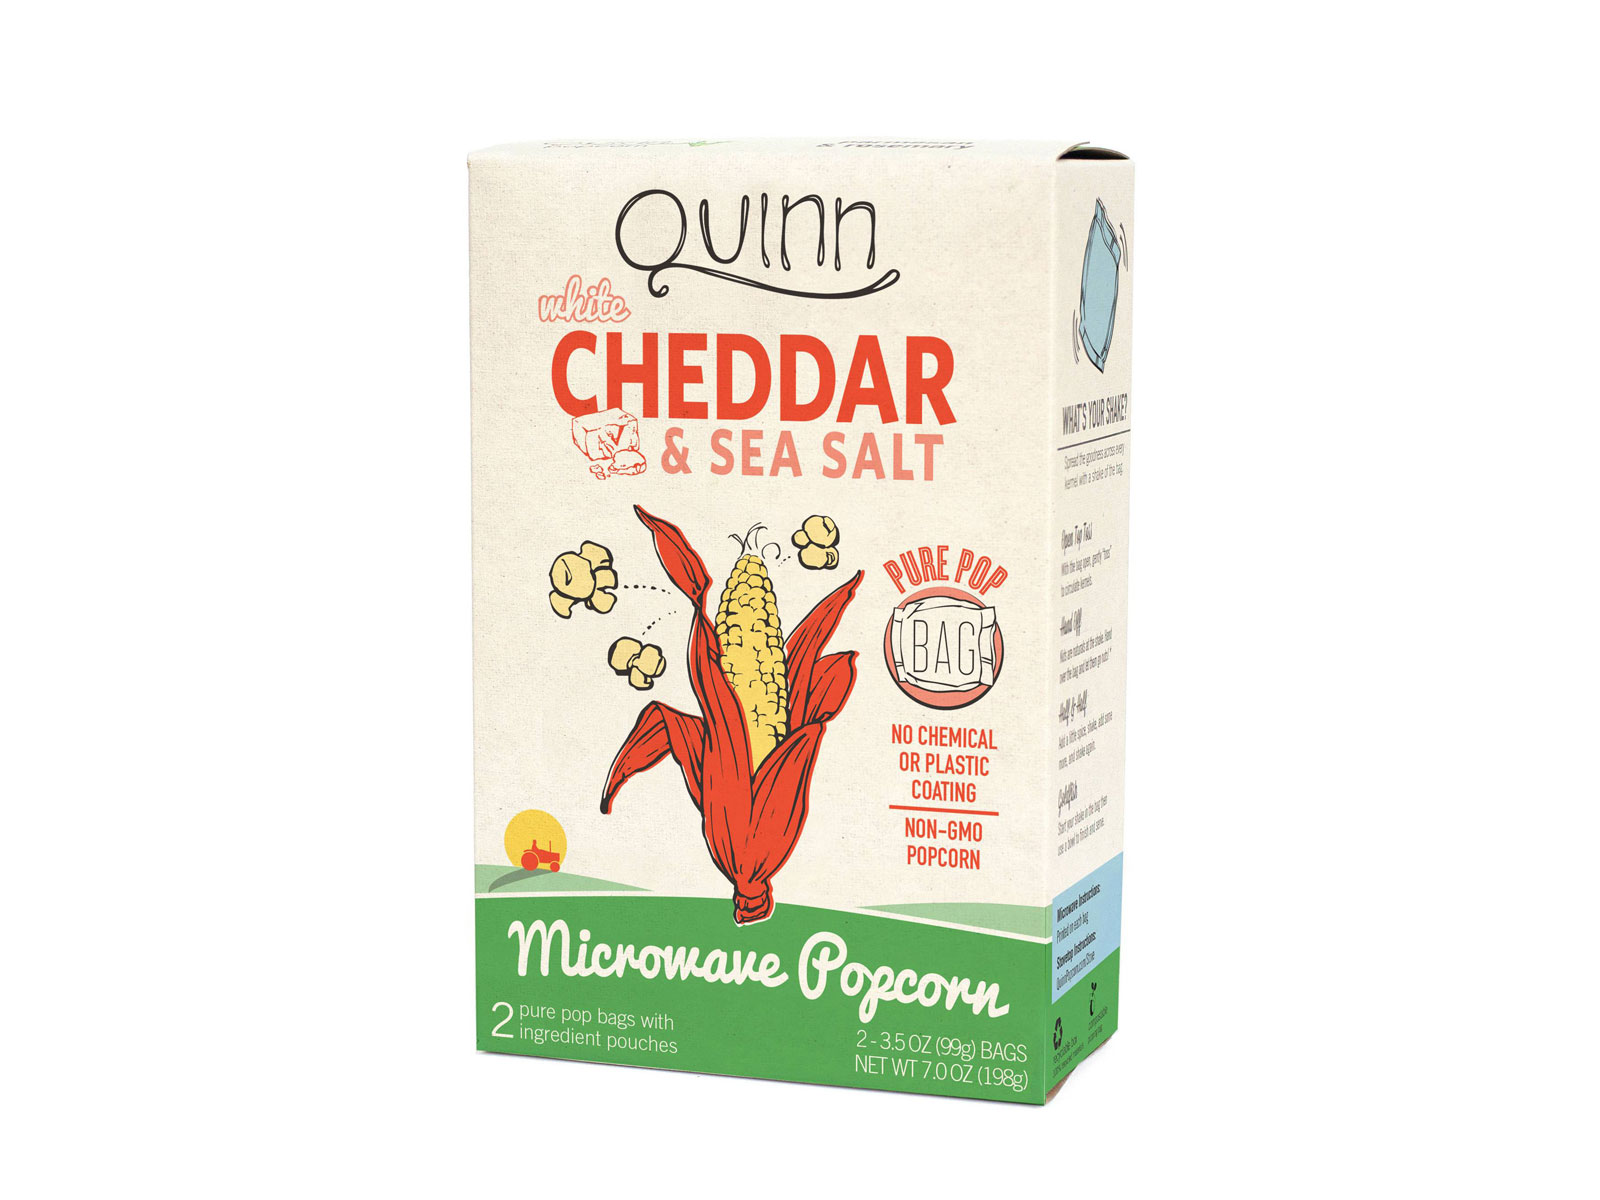 Quinn White Cheddar and Sea Salt Popcorn